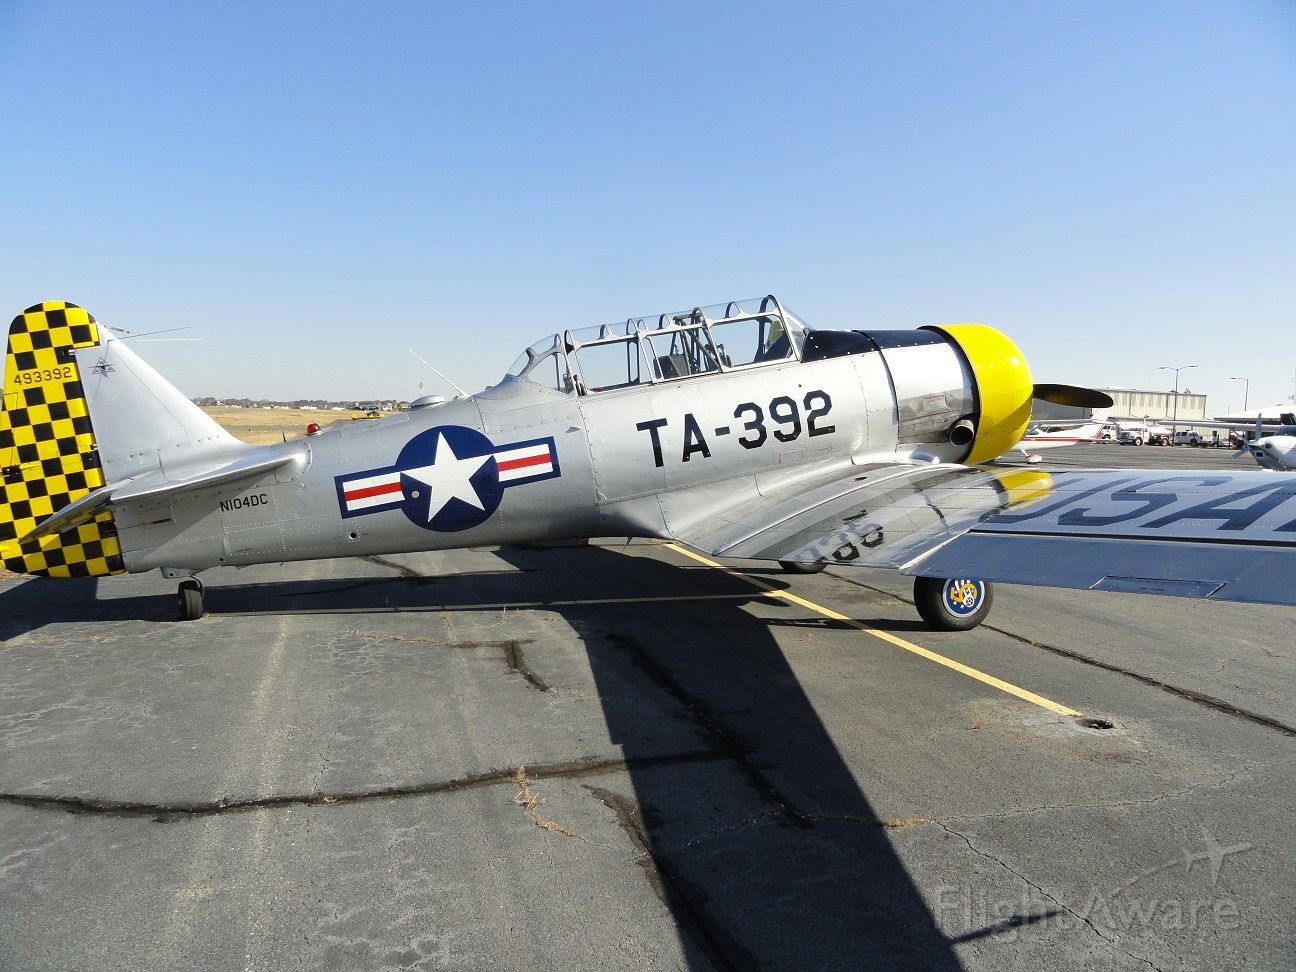 — — - T-6 flown by KT and Syd Jones as chase/photo aircraft for Tom Reilly's XP-82 Twin Mustang first official flight, 28 January 2019. Douglas, GA.